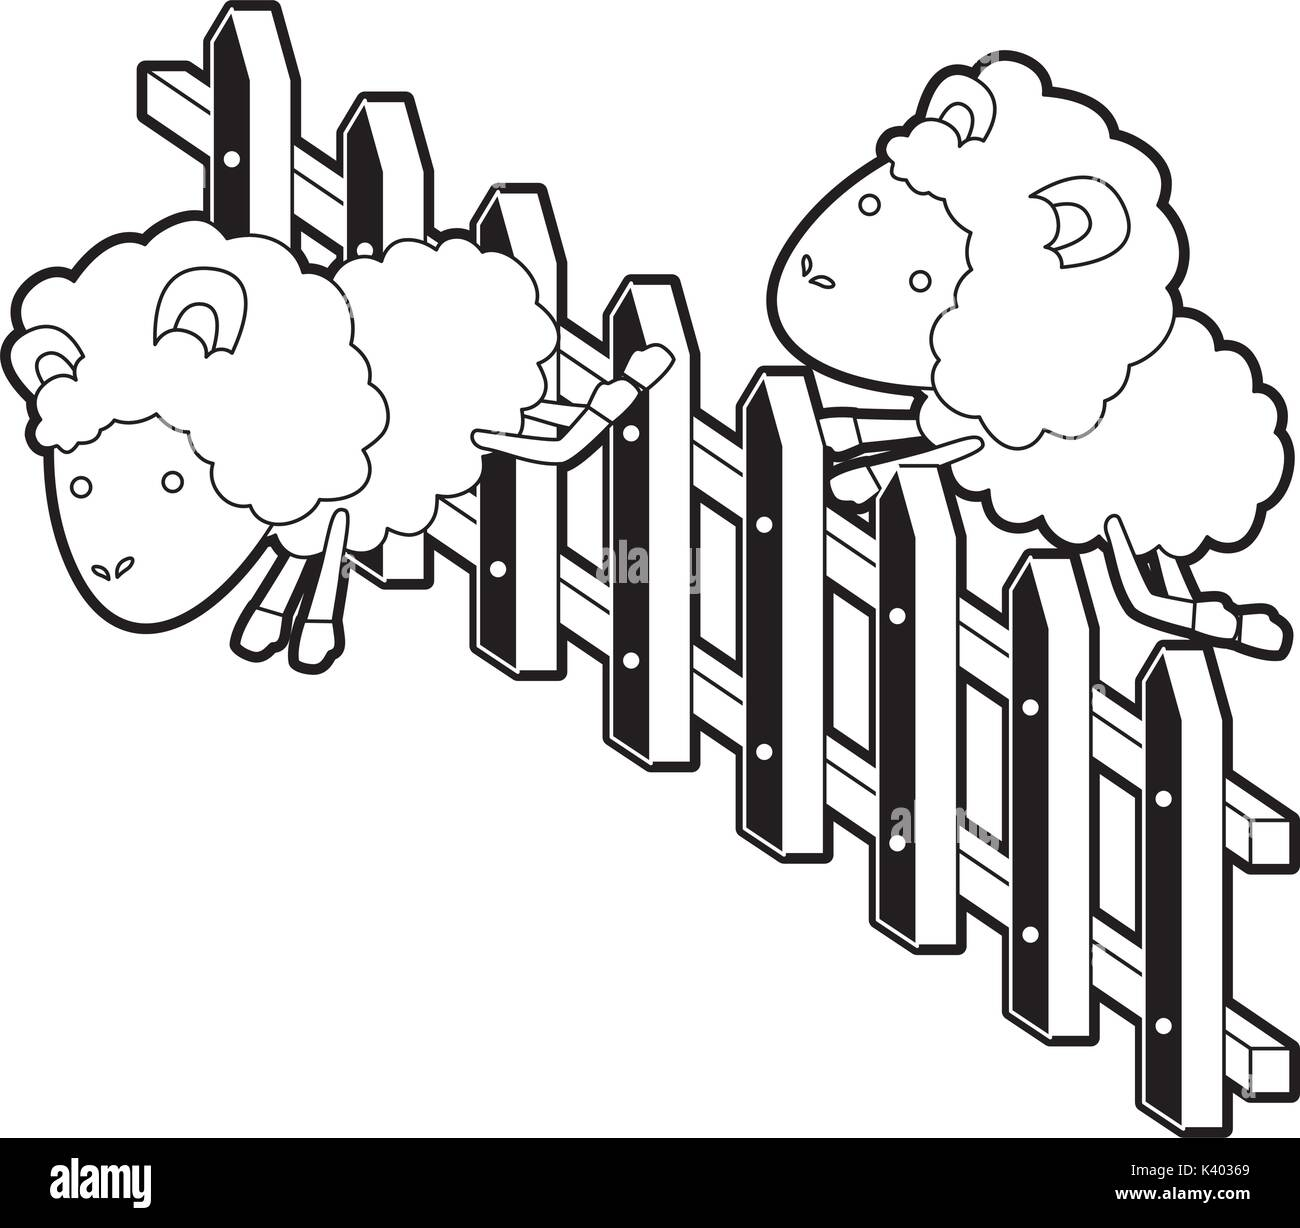 sheep animal couple jumping a wooden fence black color section silhouette on white background - Stock Vector